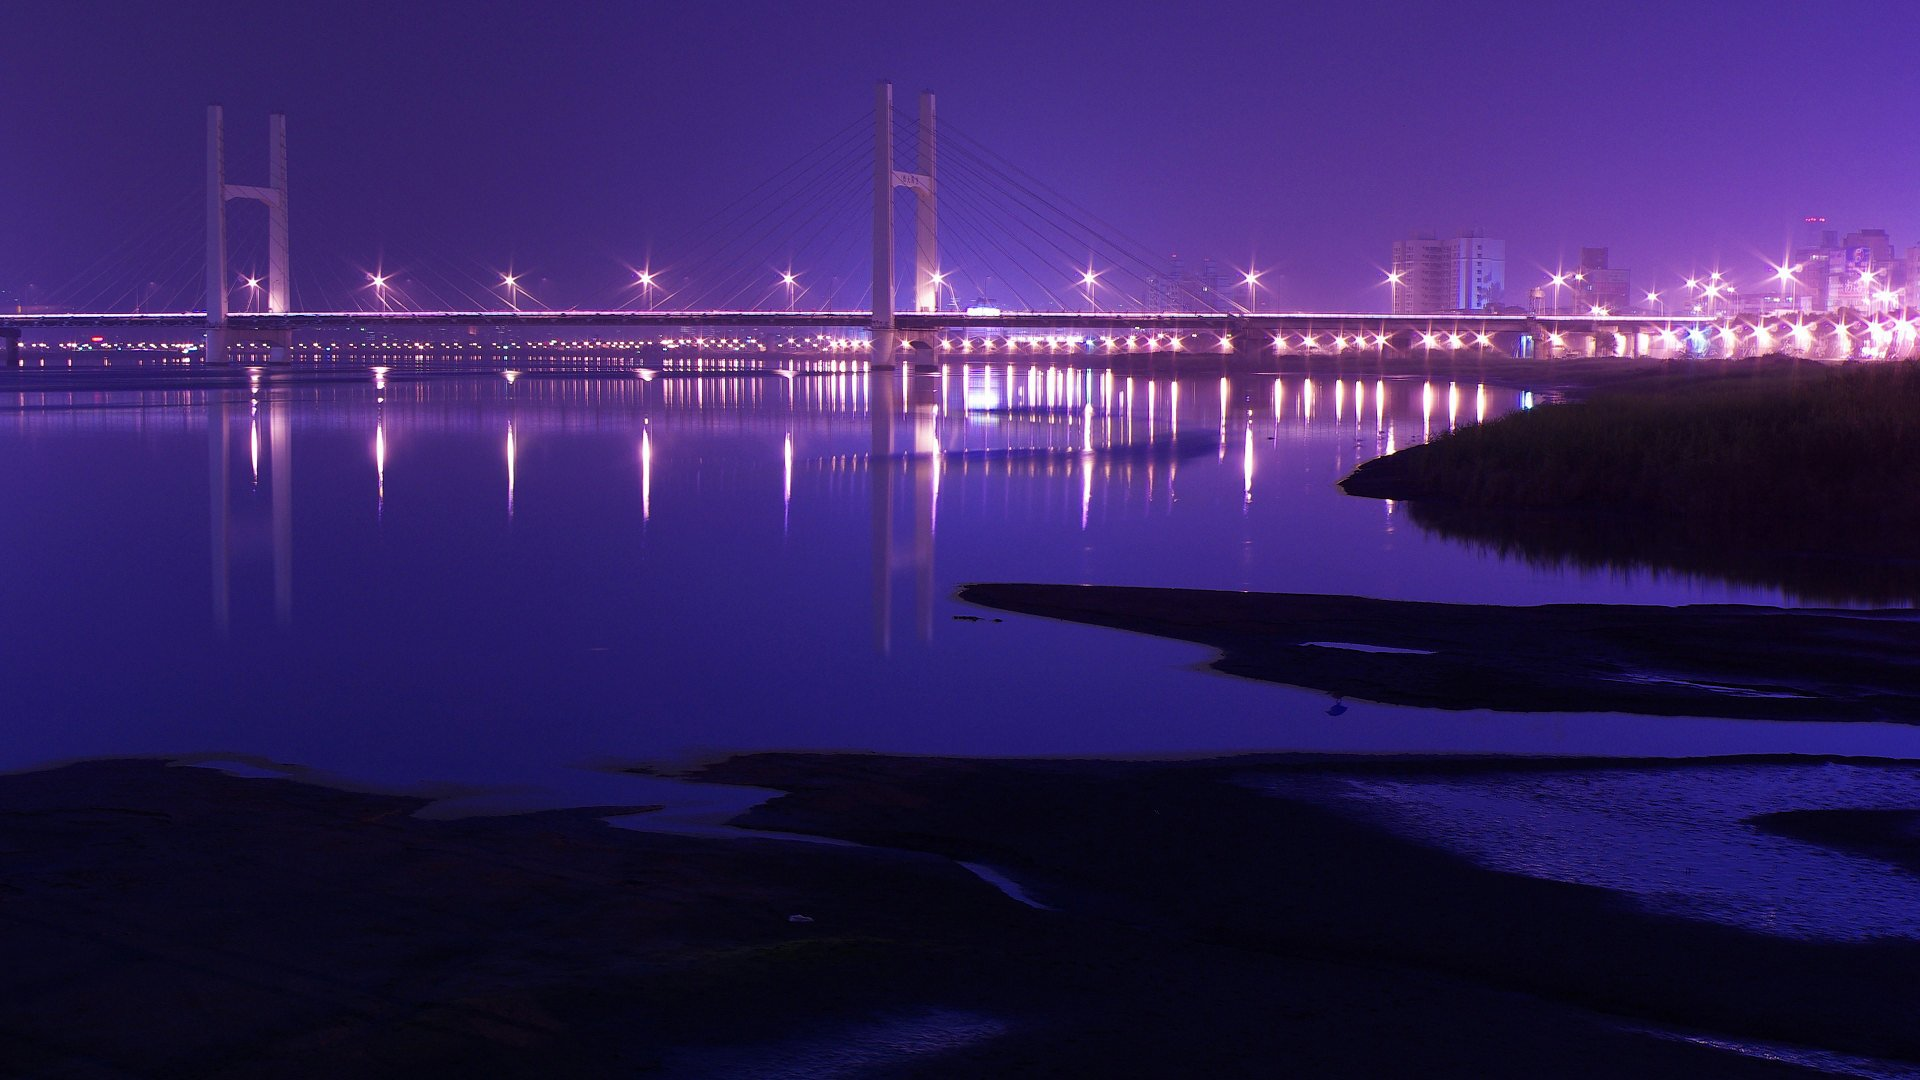 bridge at night wallpaper background